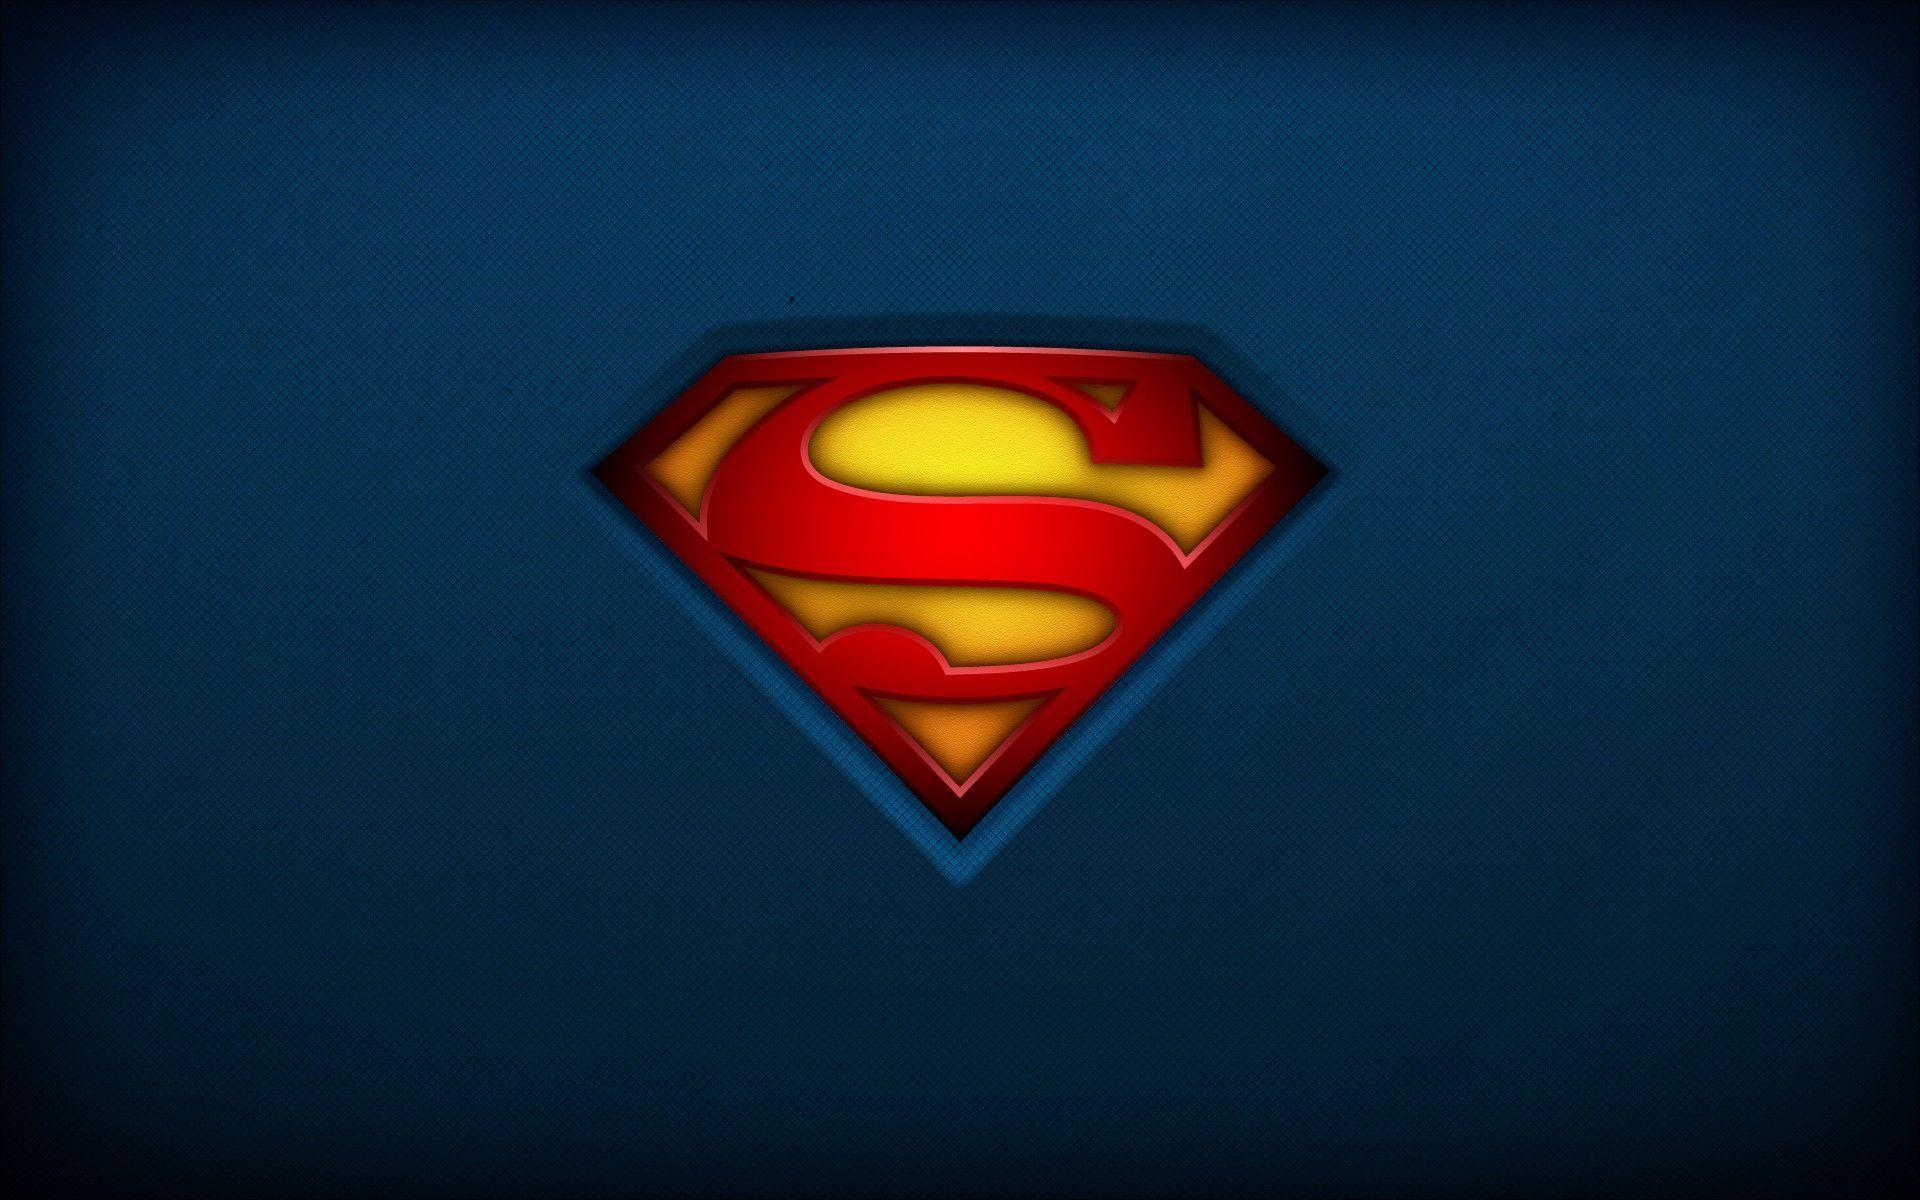 the gallery for gt superman logo wallpaper hd black